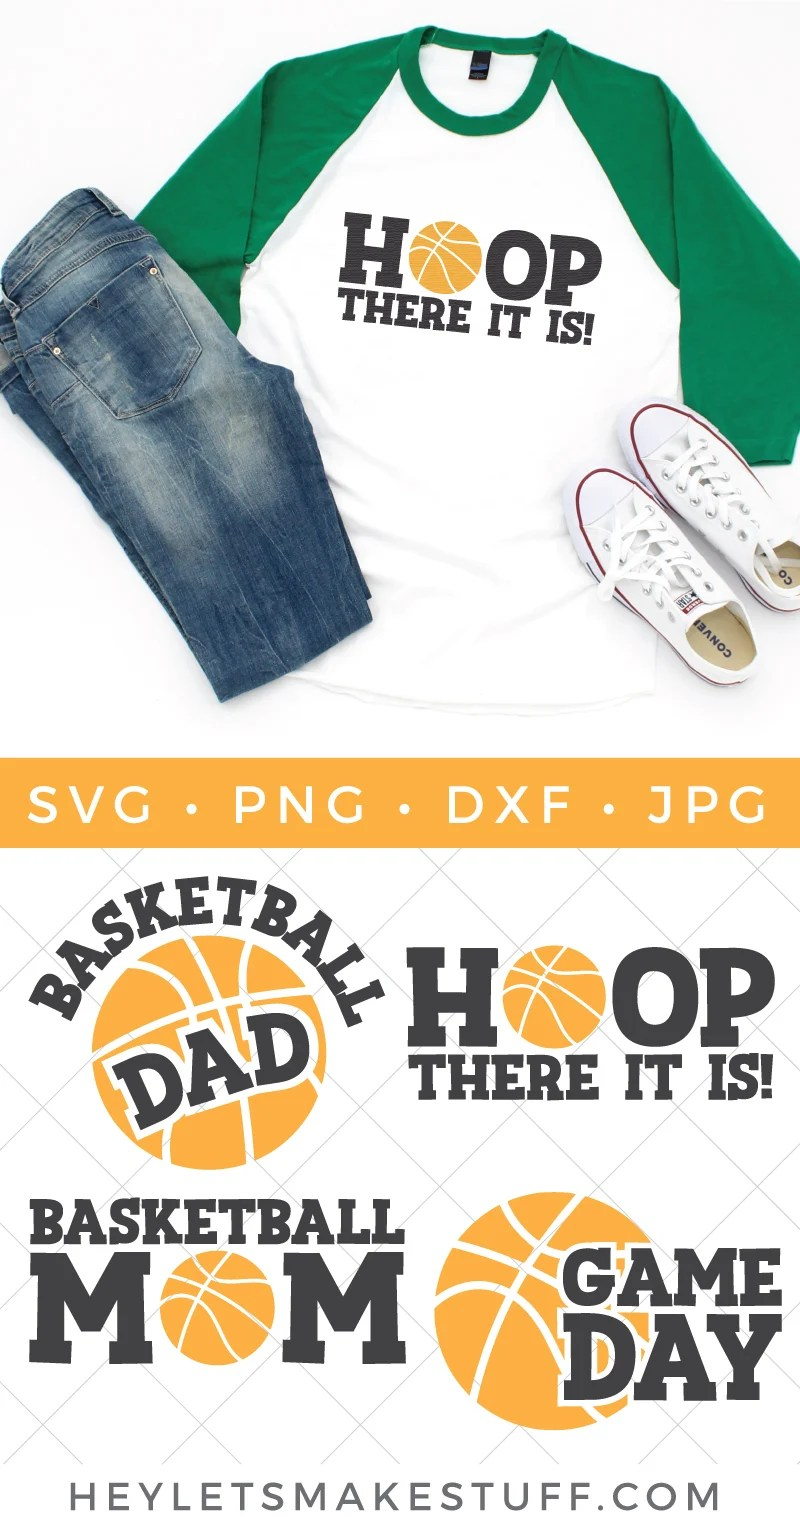 Whether you're team mom, a fan by marriage or a die hard enthusiast, this Basketball SVG Bundle is full of team spirit. Deck out those jerseys, water bottles, sports bags and more with these fun and sporty cut files. via @heyletsmakestuf